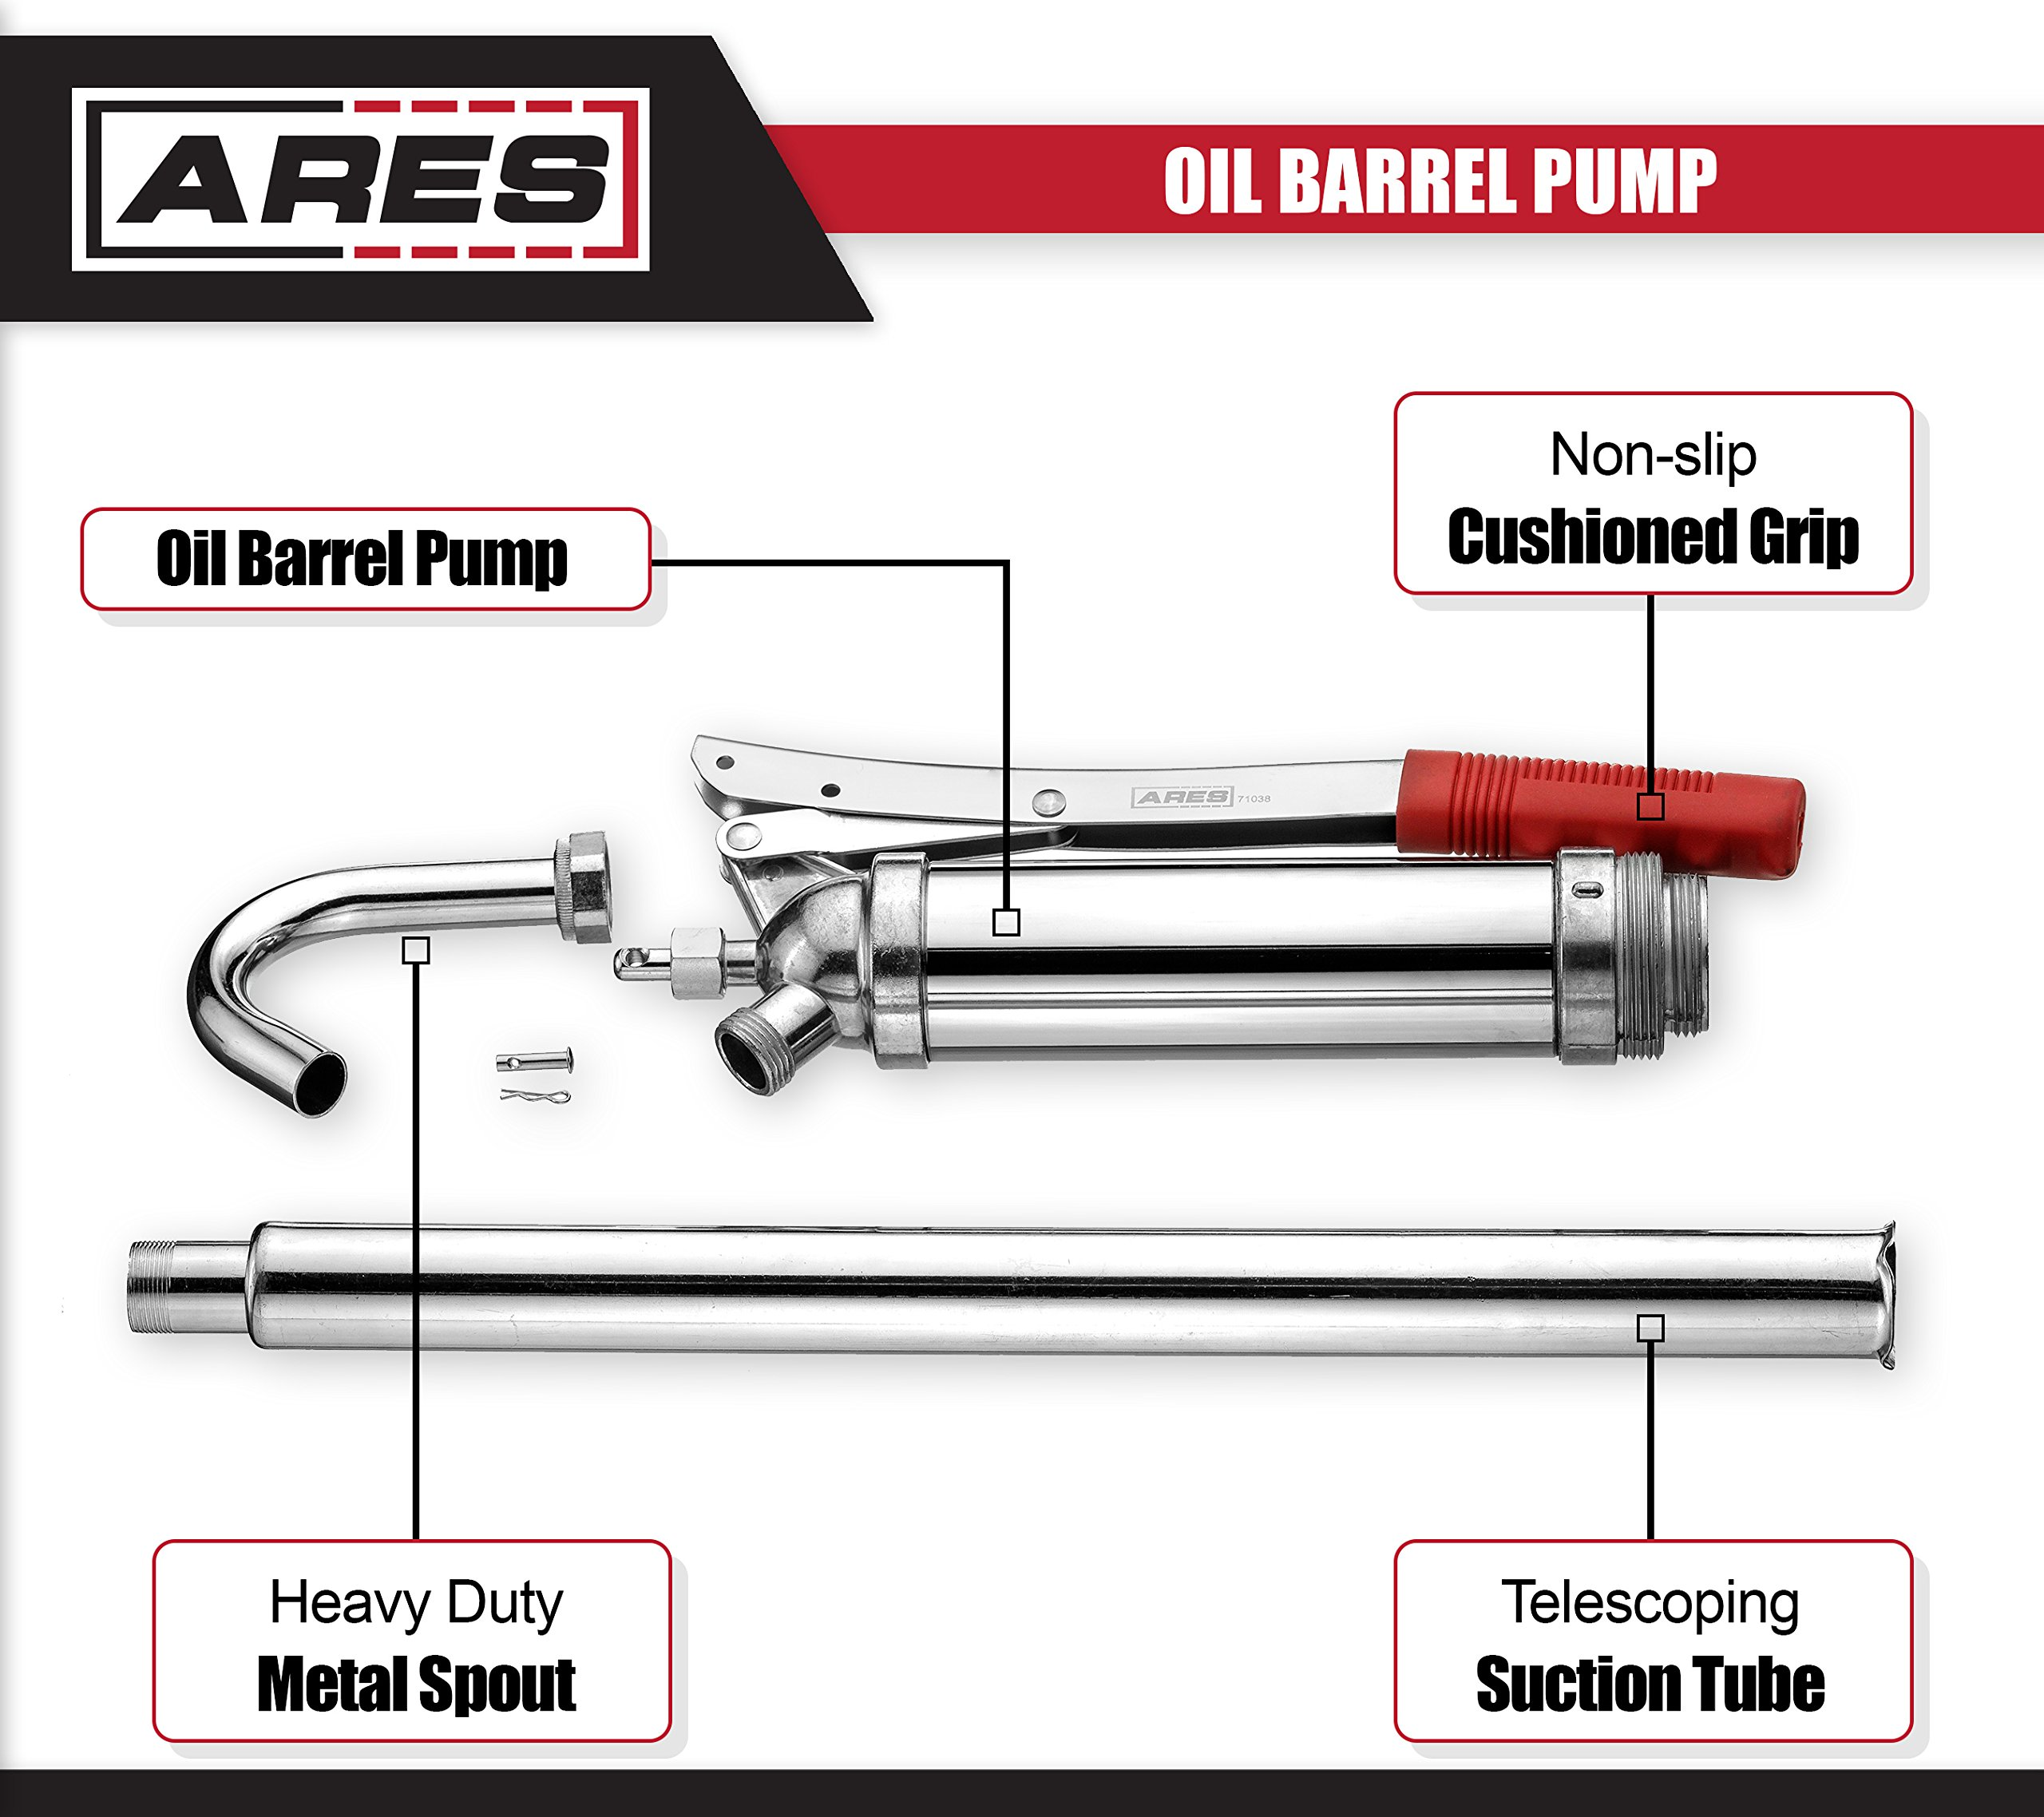 ARES 71038 | Oil Barrel Pump | 2-Piece Telescoping Suction Tube Fits 15-55 Gallon Drums | Designed to Deliver Base Oil, Transmission Oil and Heavier Fluids | Removable Spout Fits Standard Garden Hoses by ARES (Image #2)